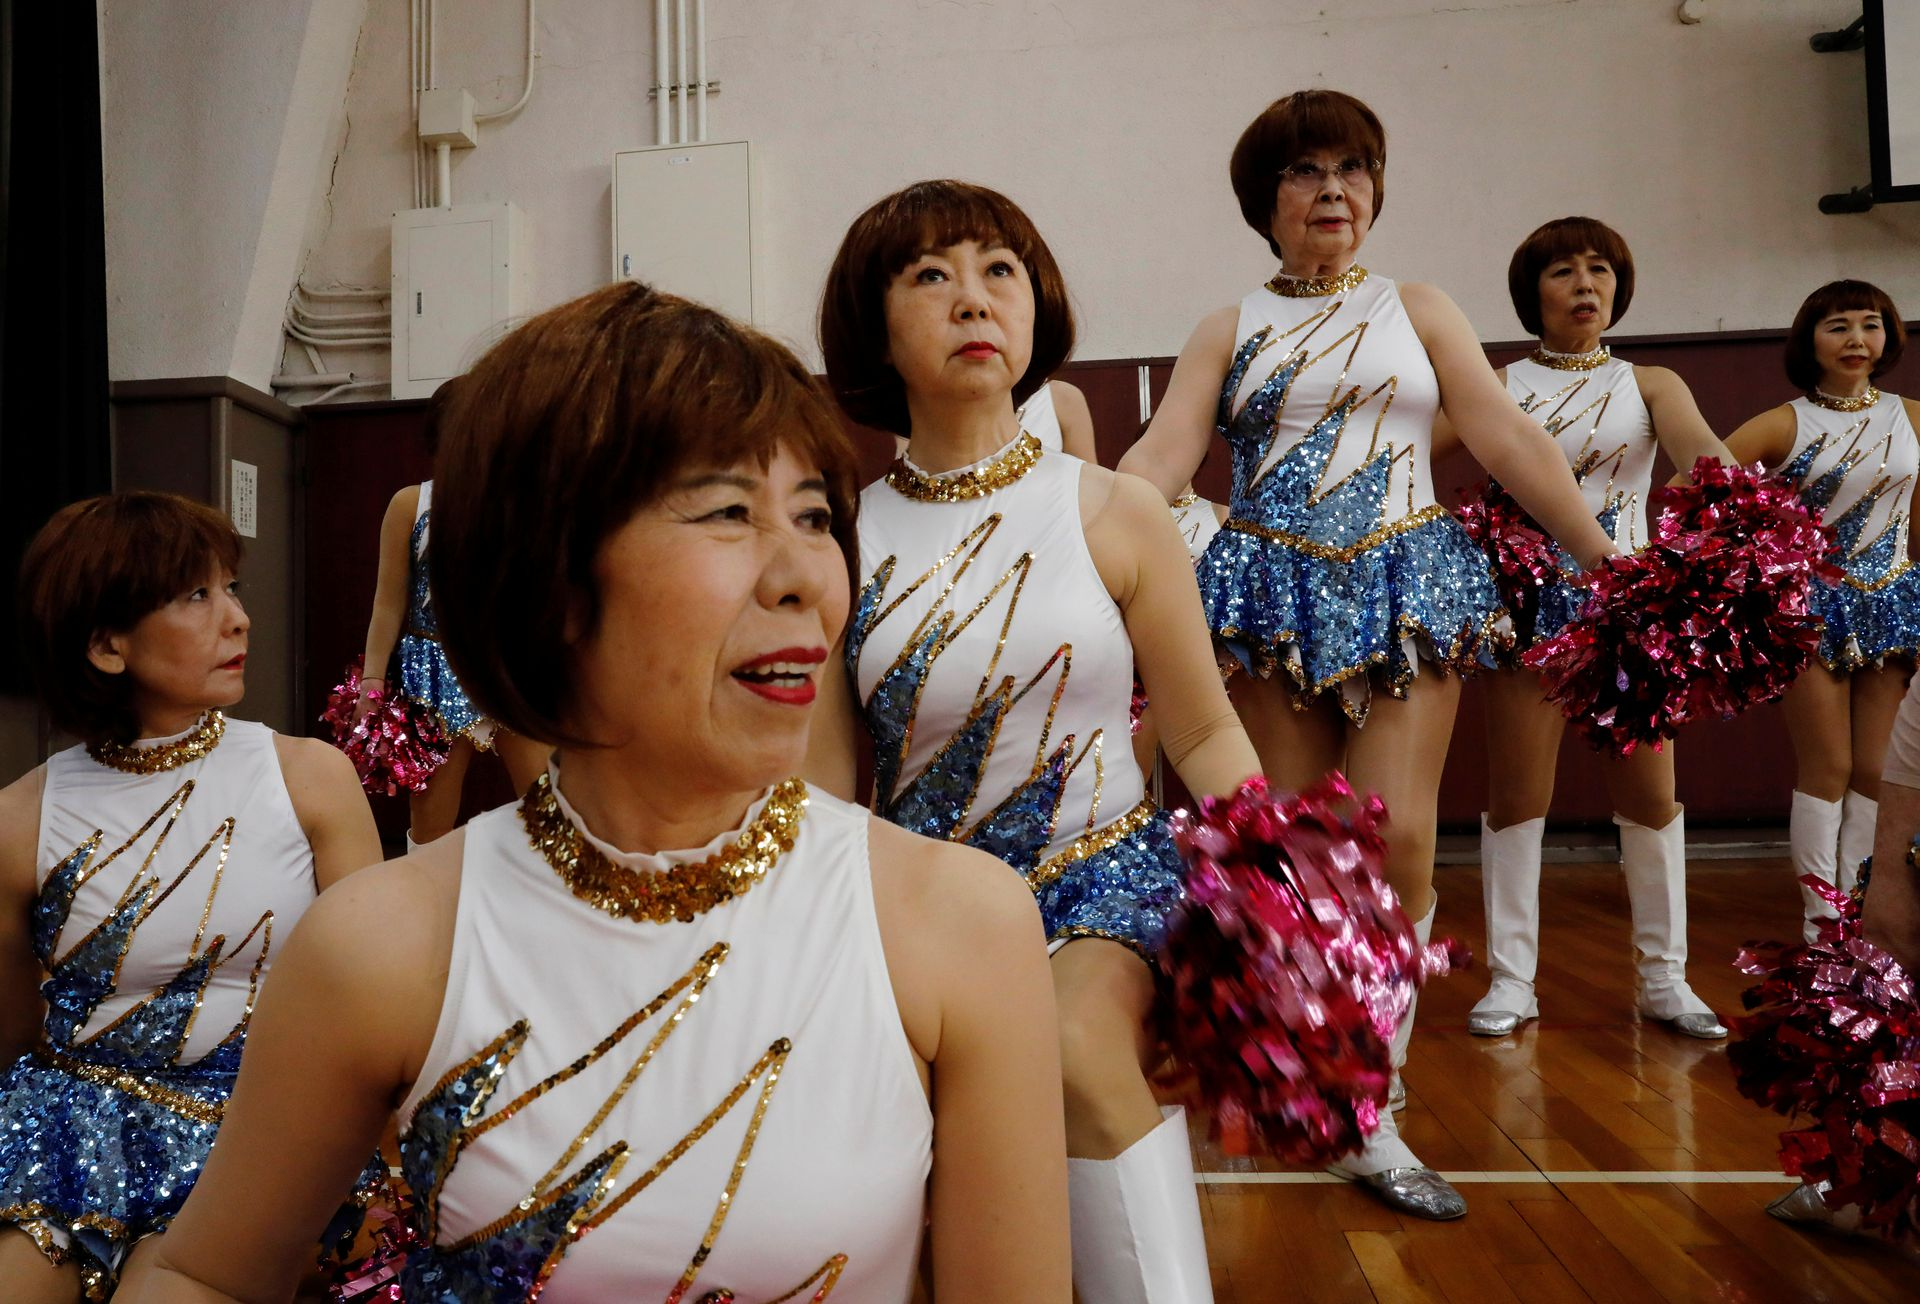 Fumie Takino, 89, founder of a senior cheer squad called Japan Pom Pom, and other members prepare to pose for commemorative photos before filming a dance routine for an online performance in Tokyo, Japan, April 12, 2021. Photo: Reuters